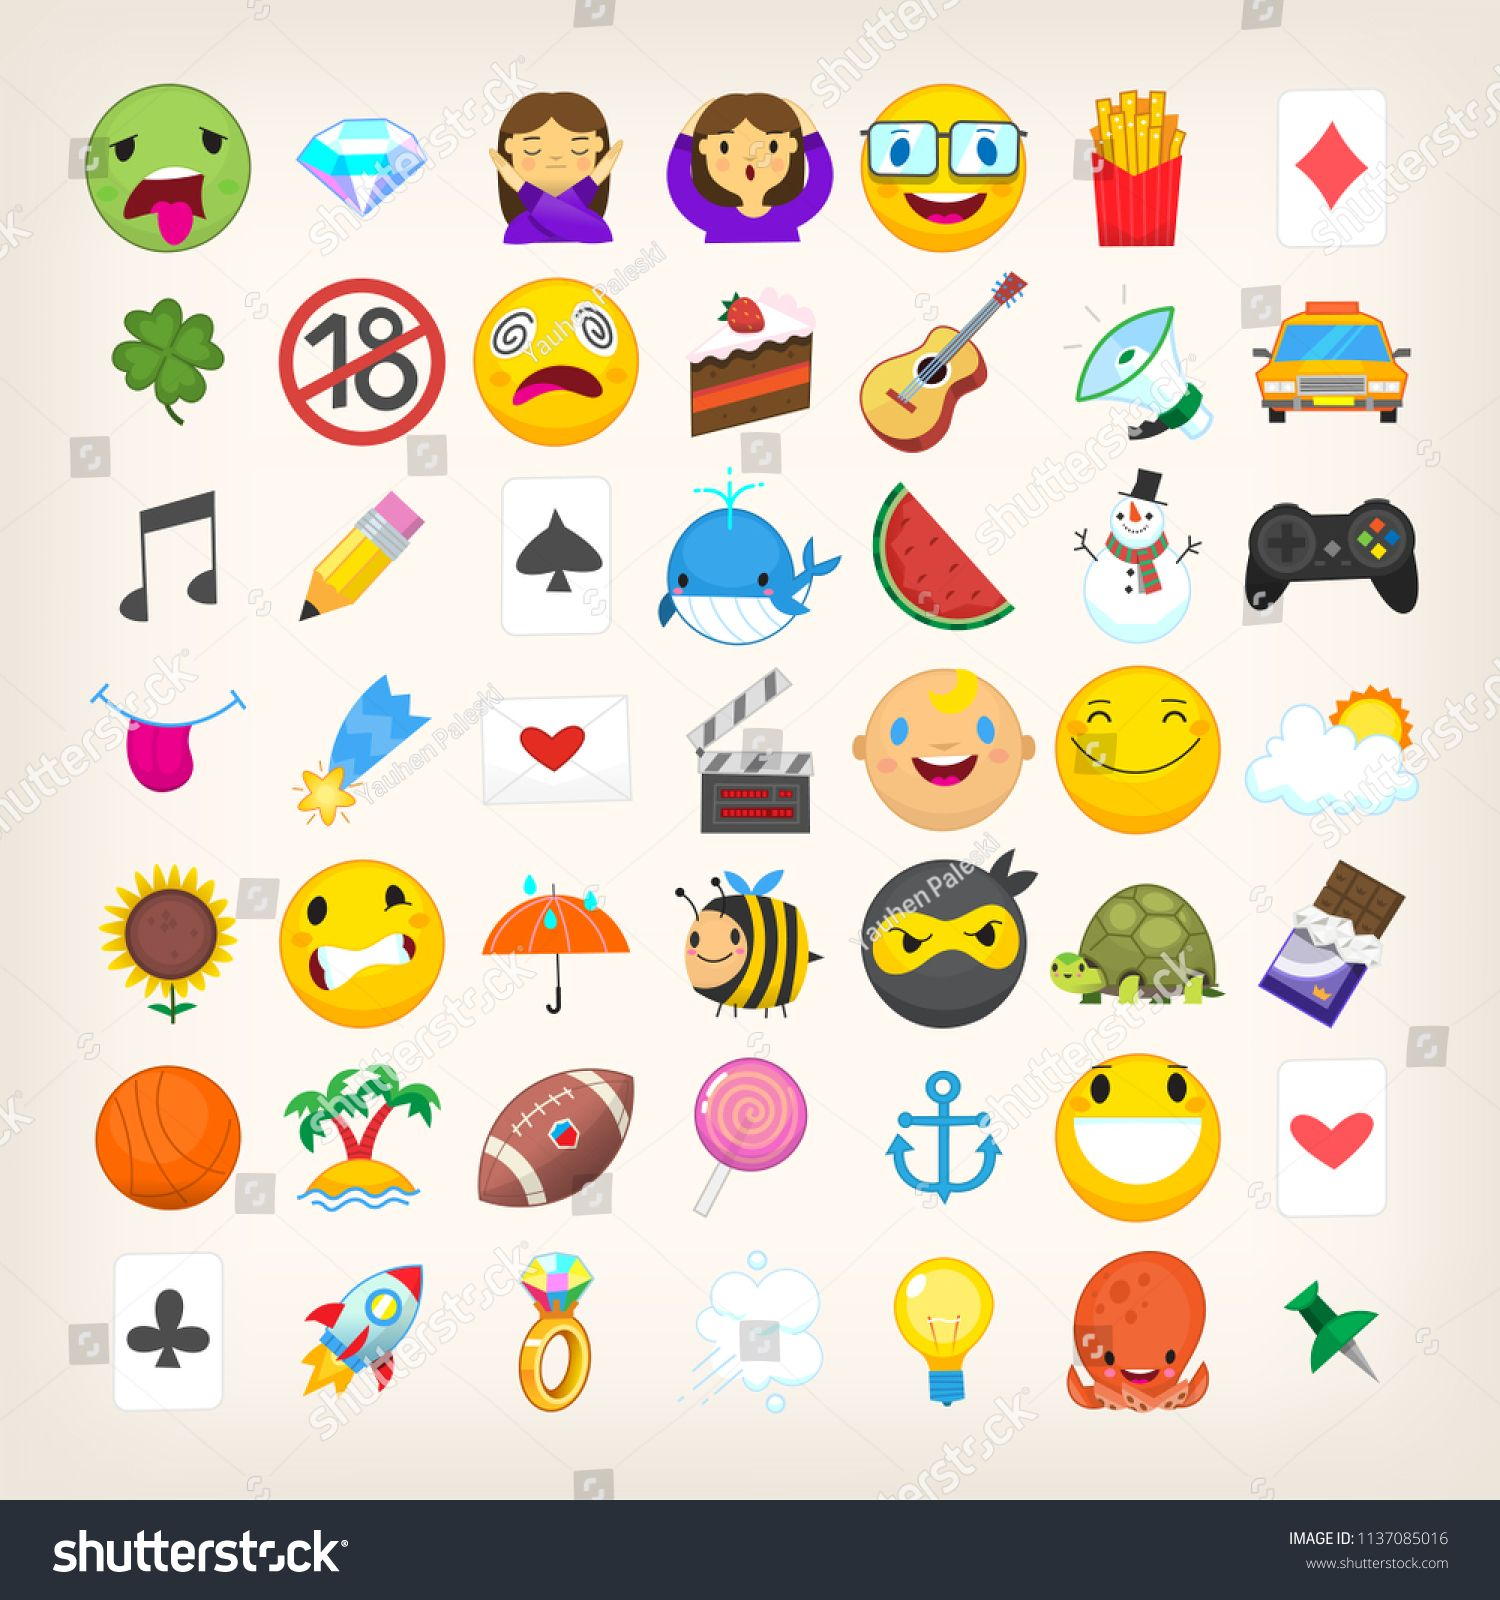 Set Of Graphic Emoticons Signs And Symbols Used In Social Media Chats Cartoon Style Vector Icons Cute And Funny Cartoon Styles Funny Character Vector Icons